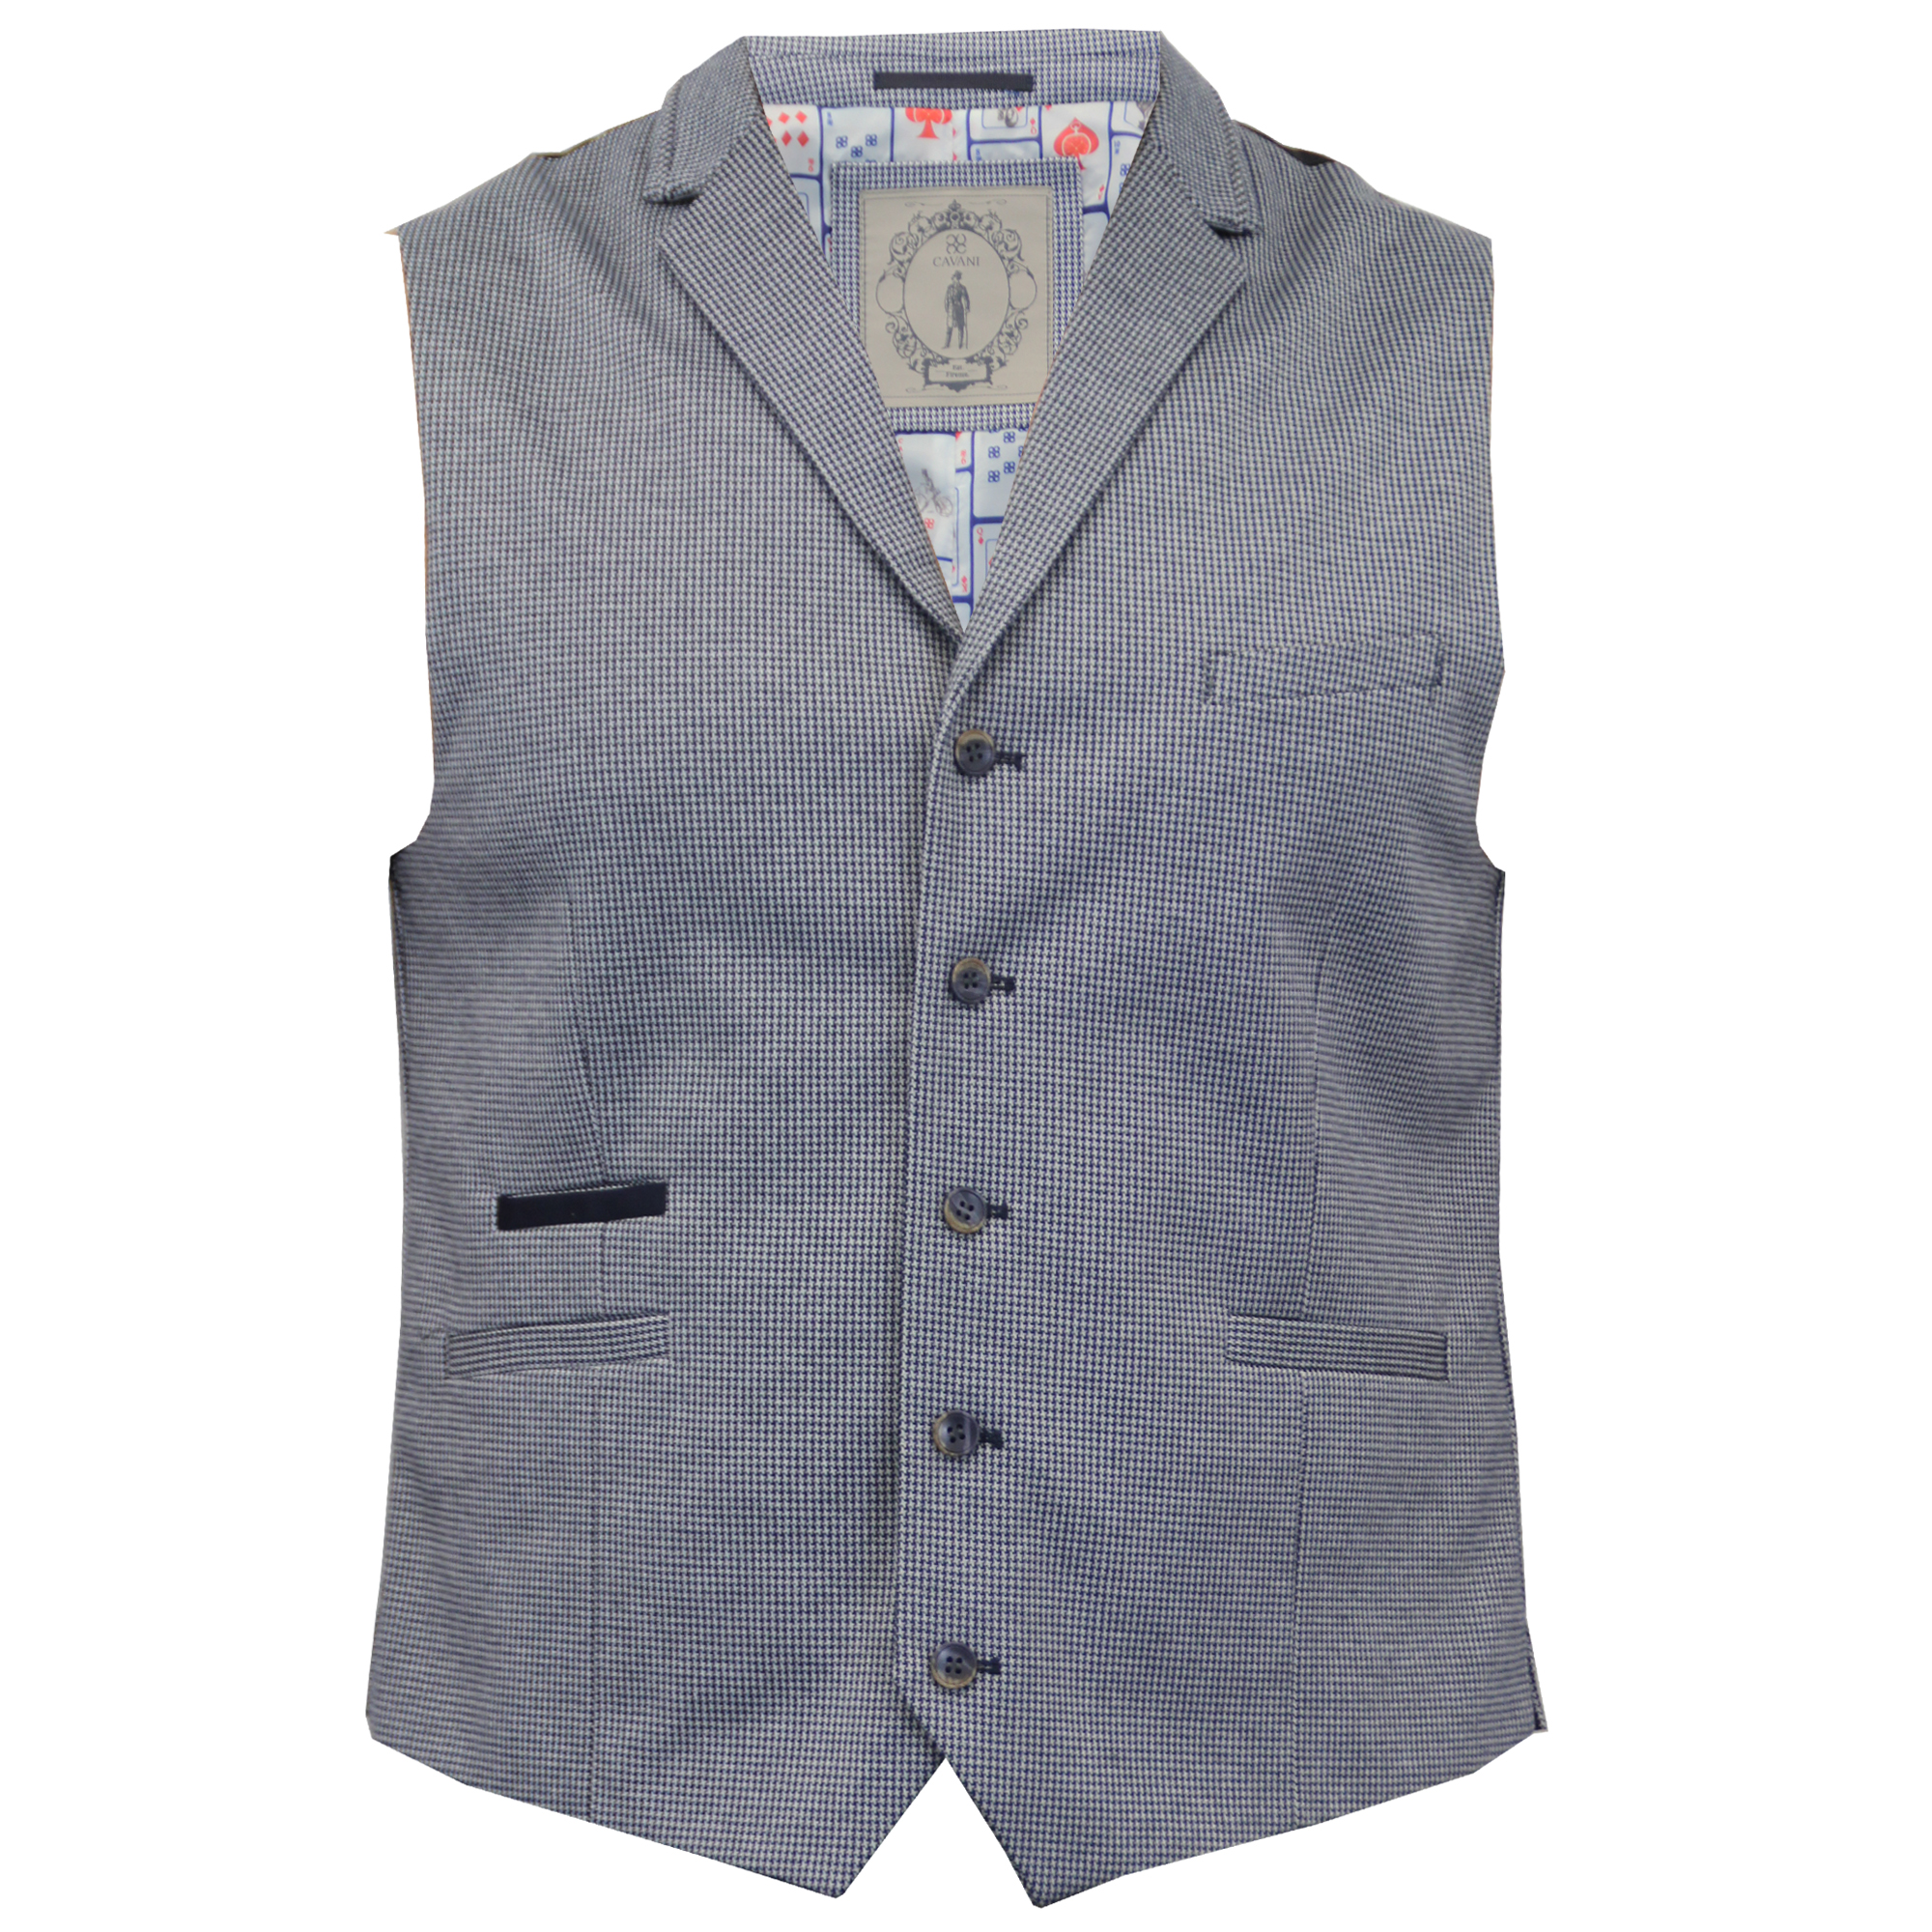 Hand Tailored Cotton Linen Waistcoats, Traditional Styled Men's Cotton Linen Waistcoats custom made from your choice of Linen in the UK.